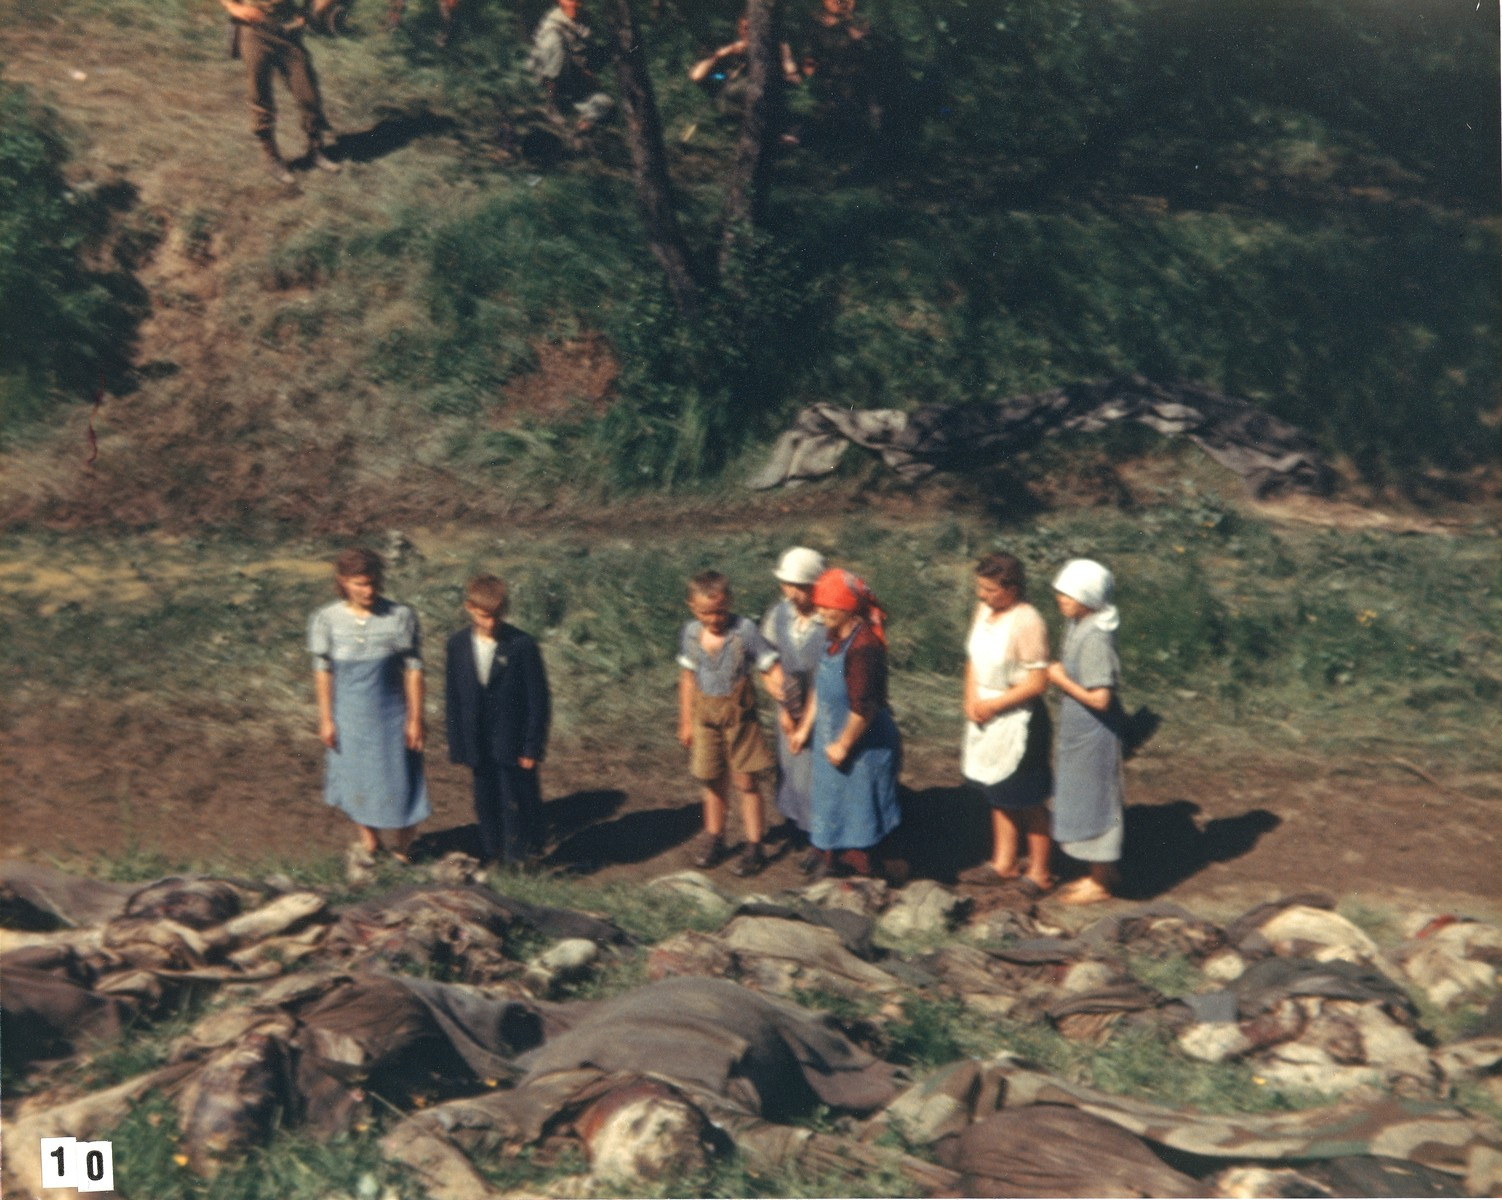 German civilians walk among the corpses of prisoners exhumed from a mass grave near the town of Nammering.